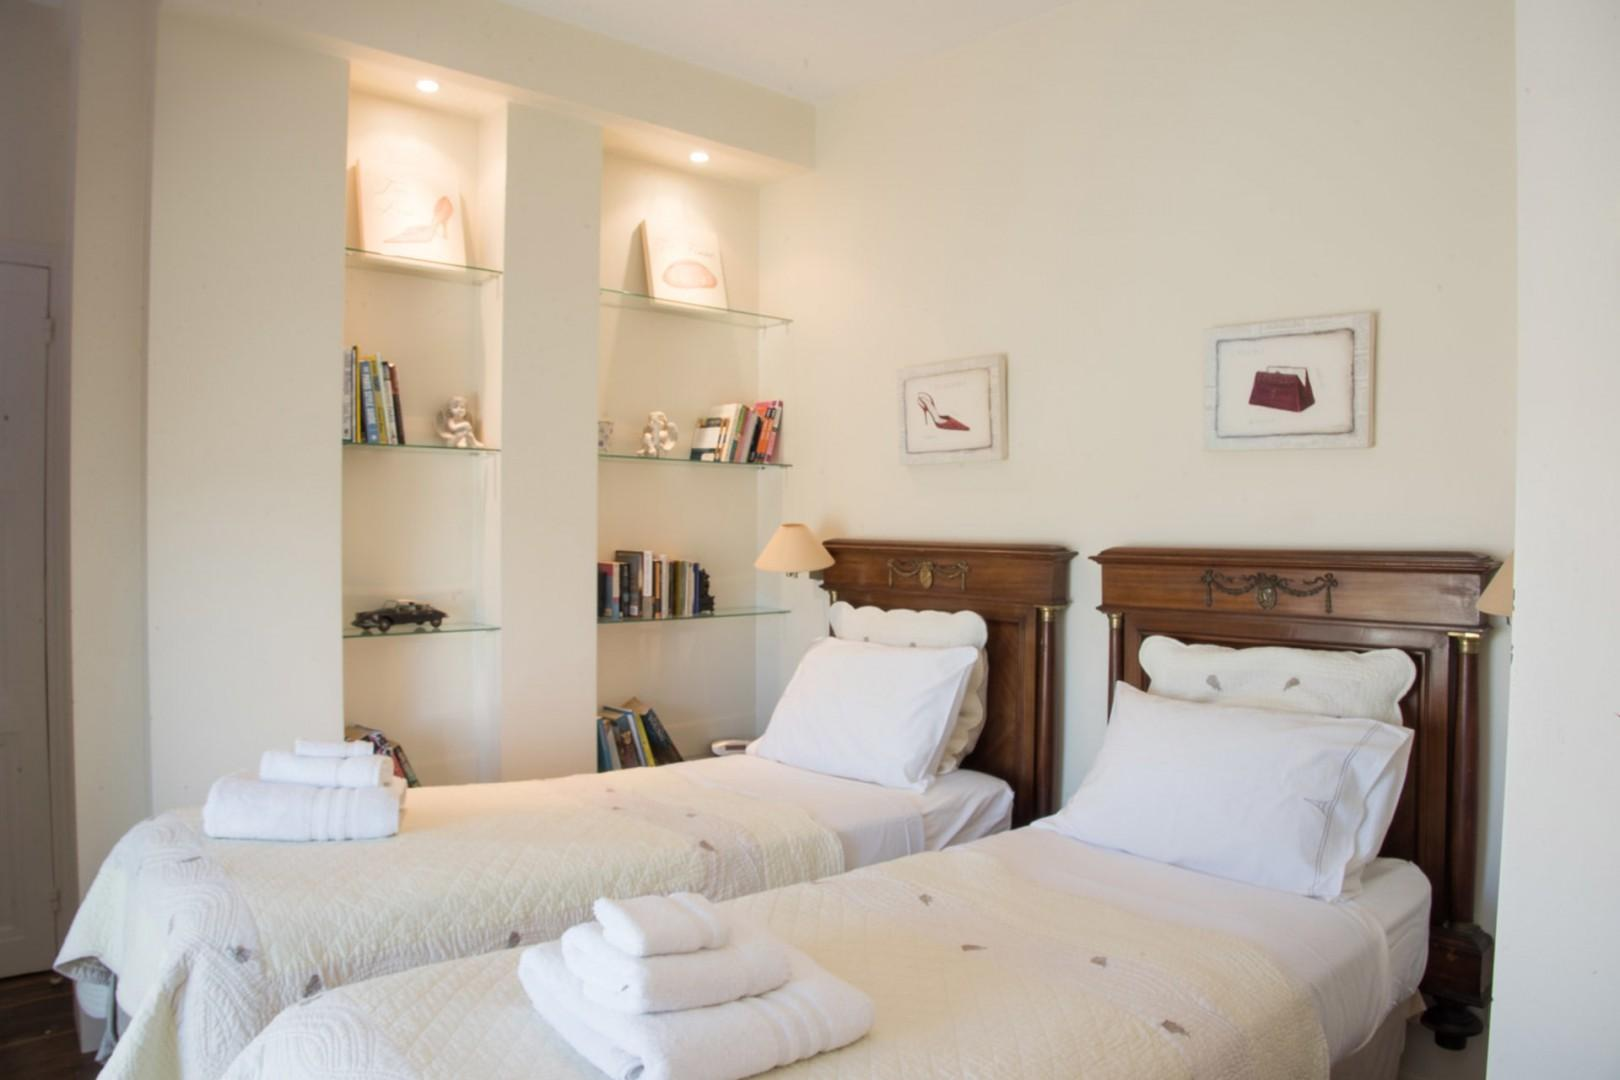 Bedroom 2 is equipped with two comfortable beds and luxurious linens.